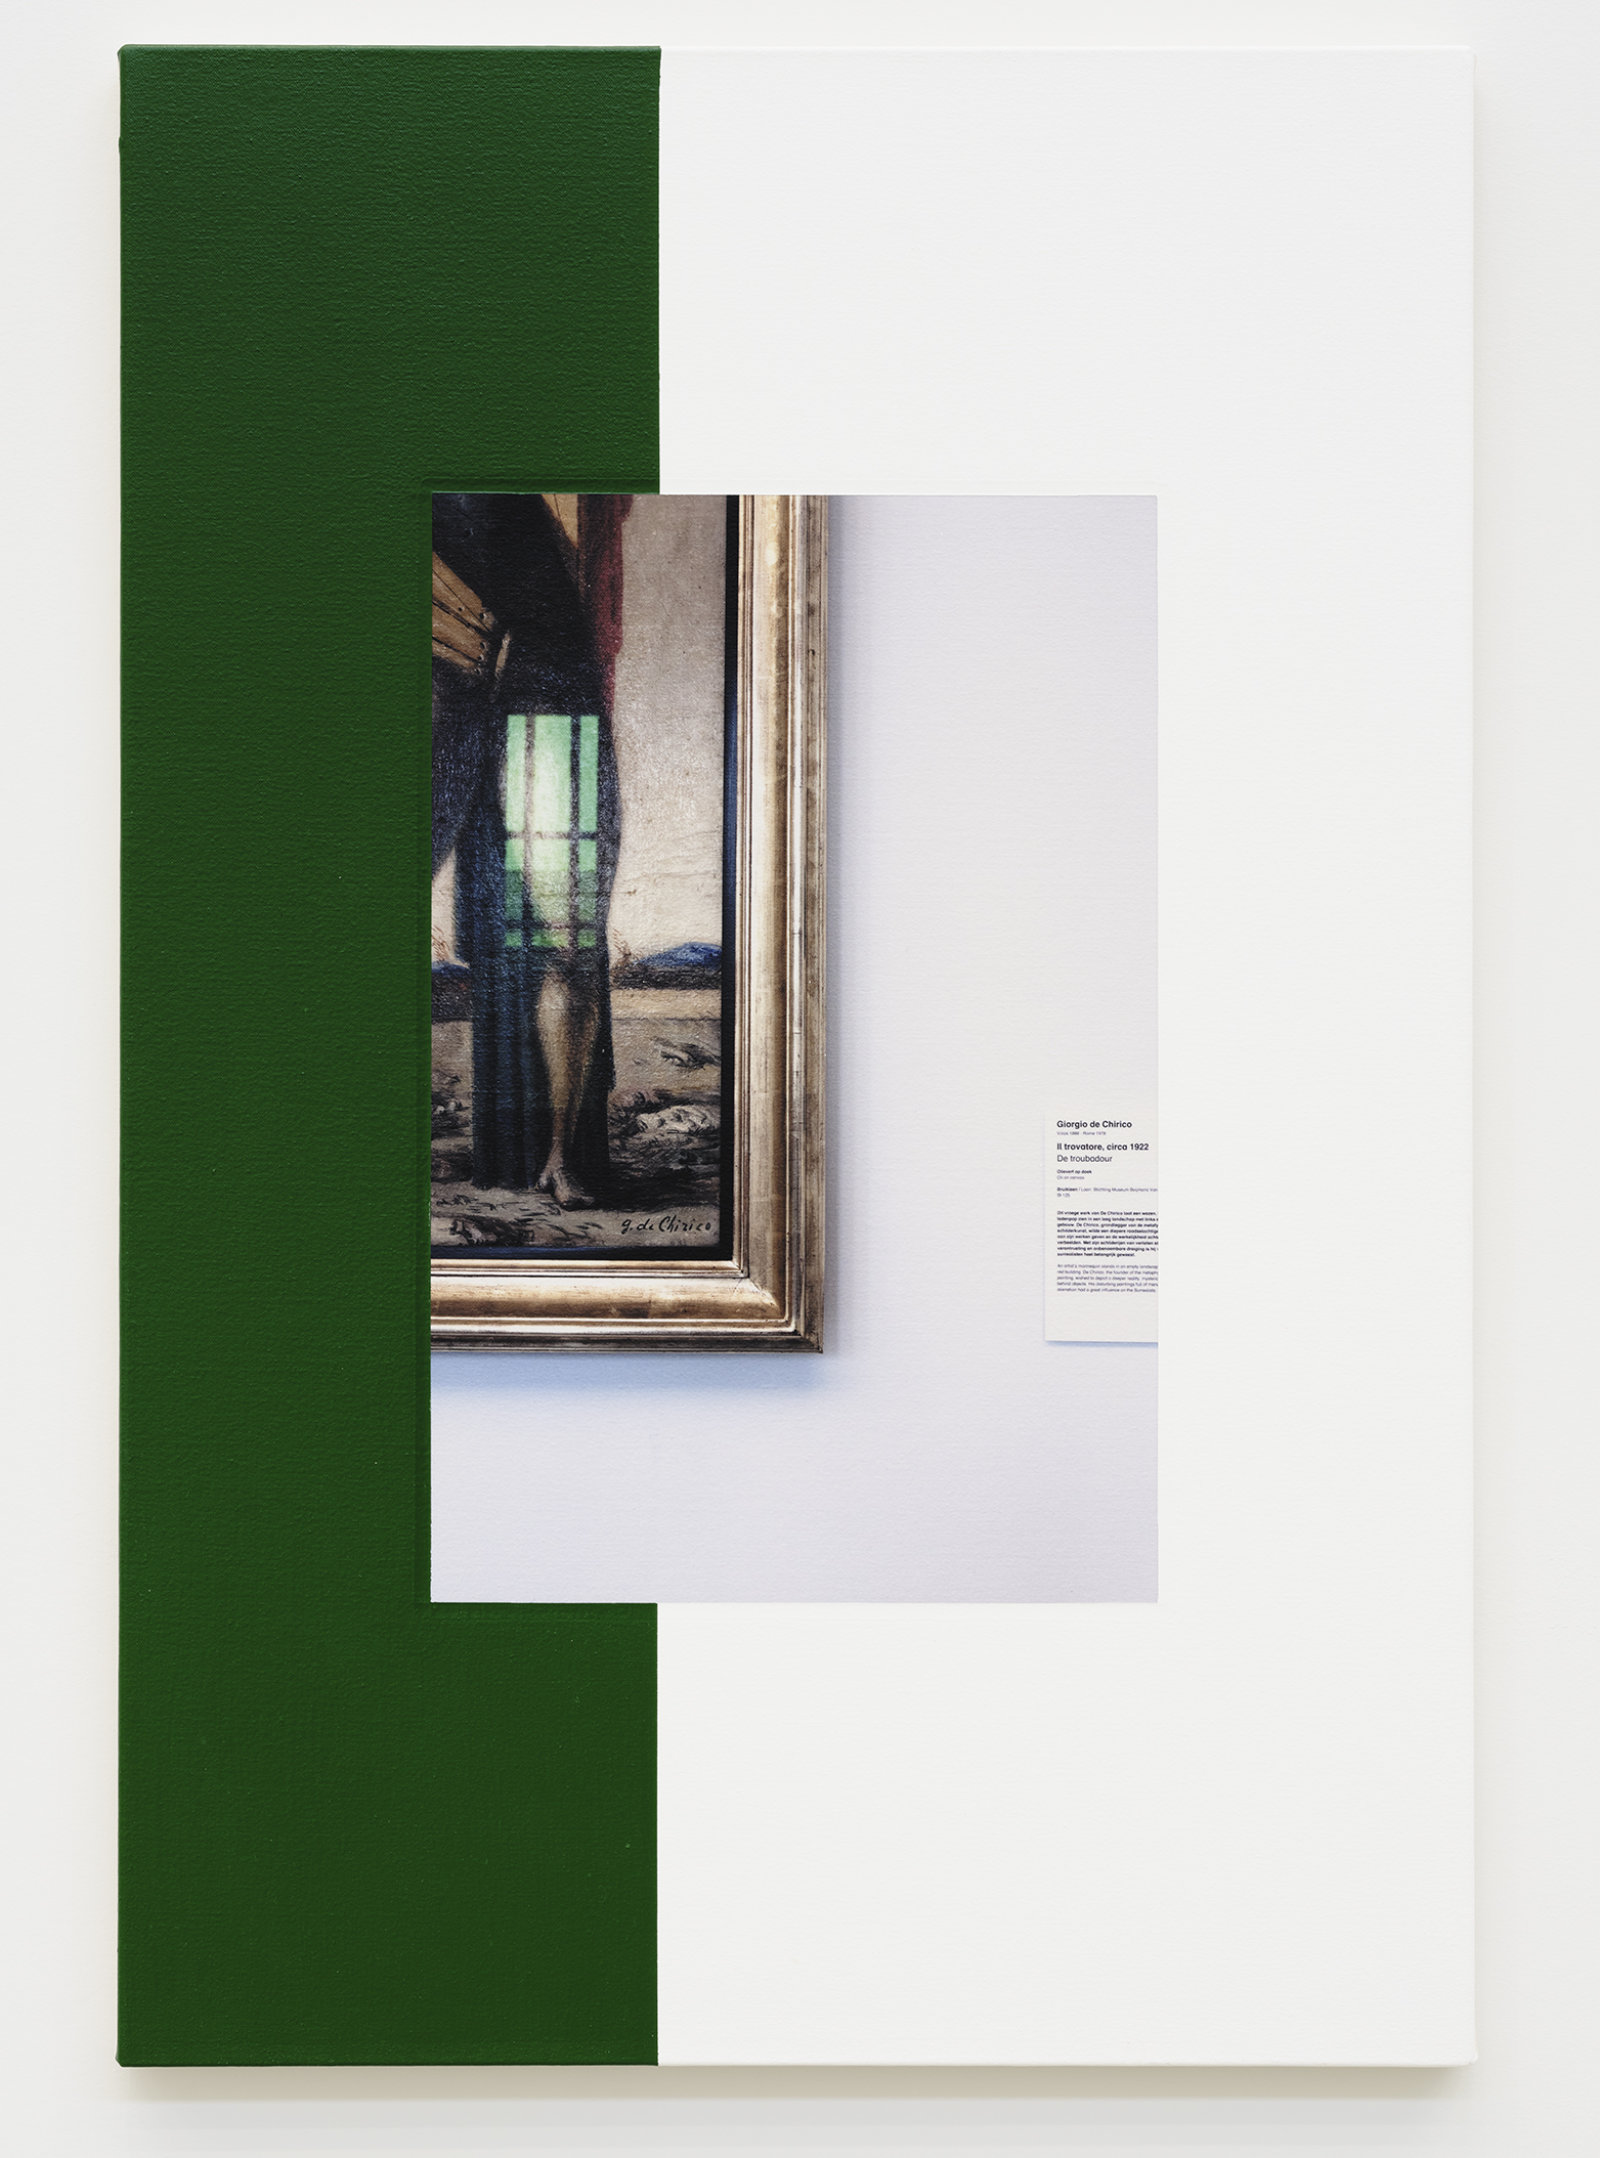 Ian Wallace, Abstract Composition (with de Chirico), 2011, photolaminate with acrylic on canvas, 36 x 24 in. (91 x 61 cm) by Ian Wallace